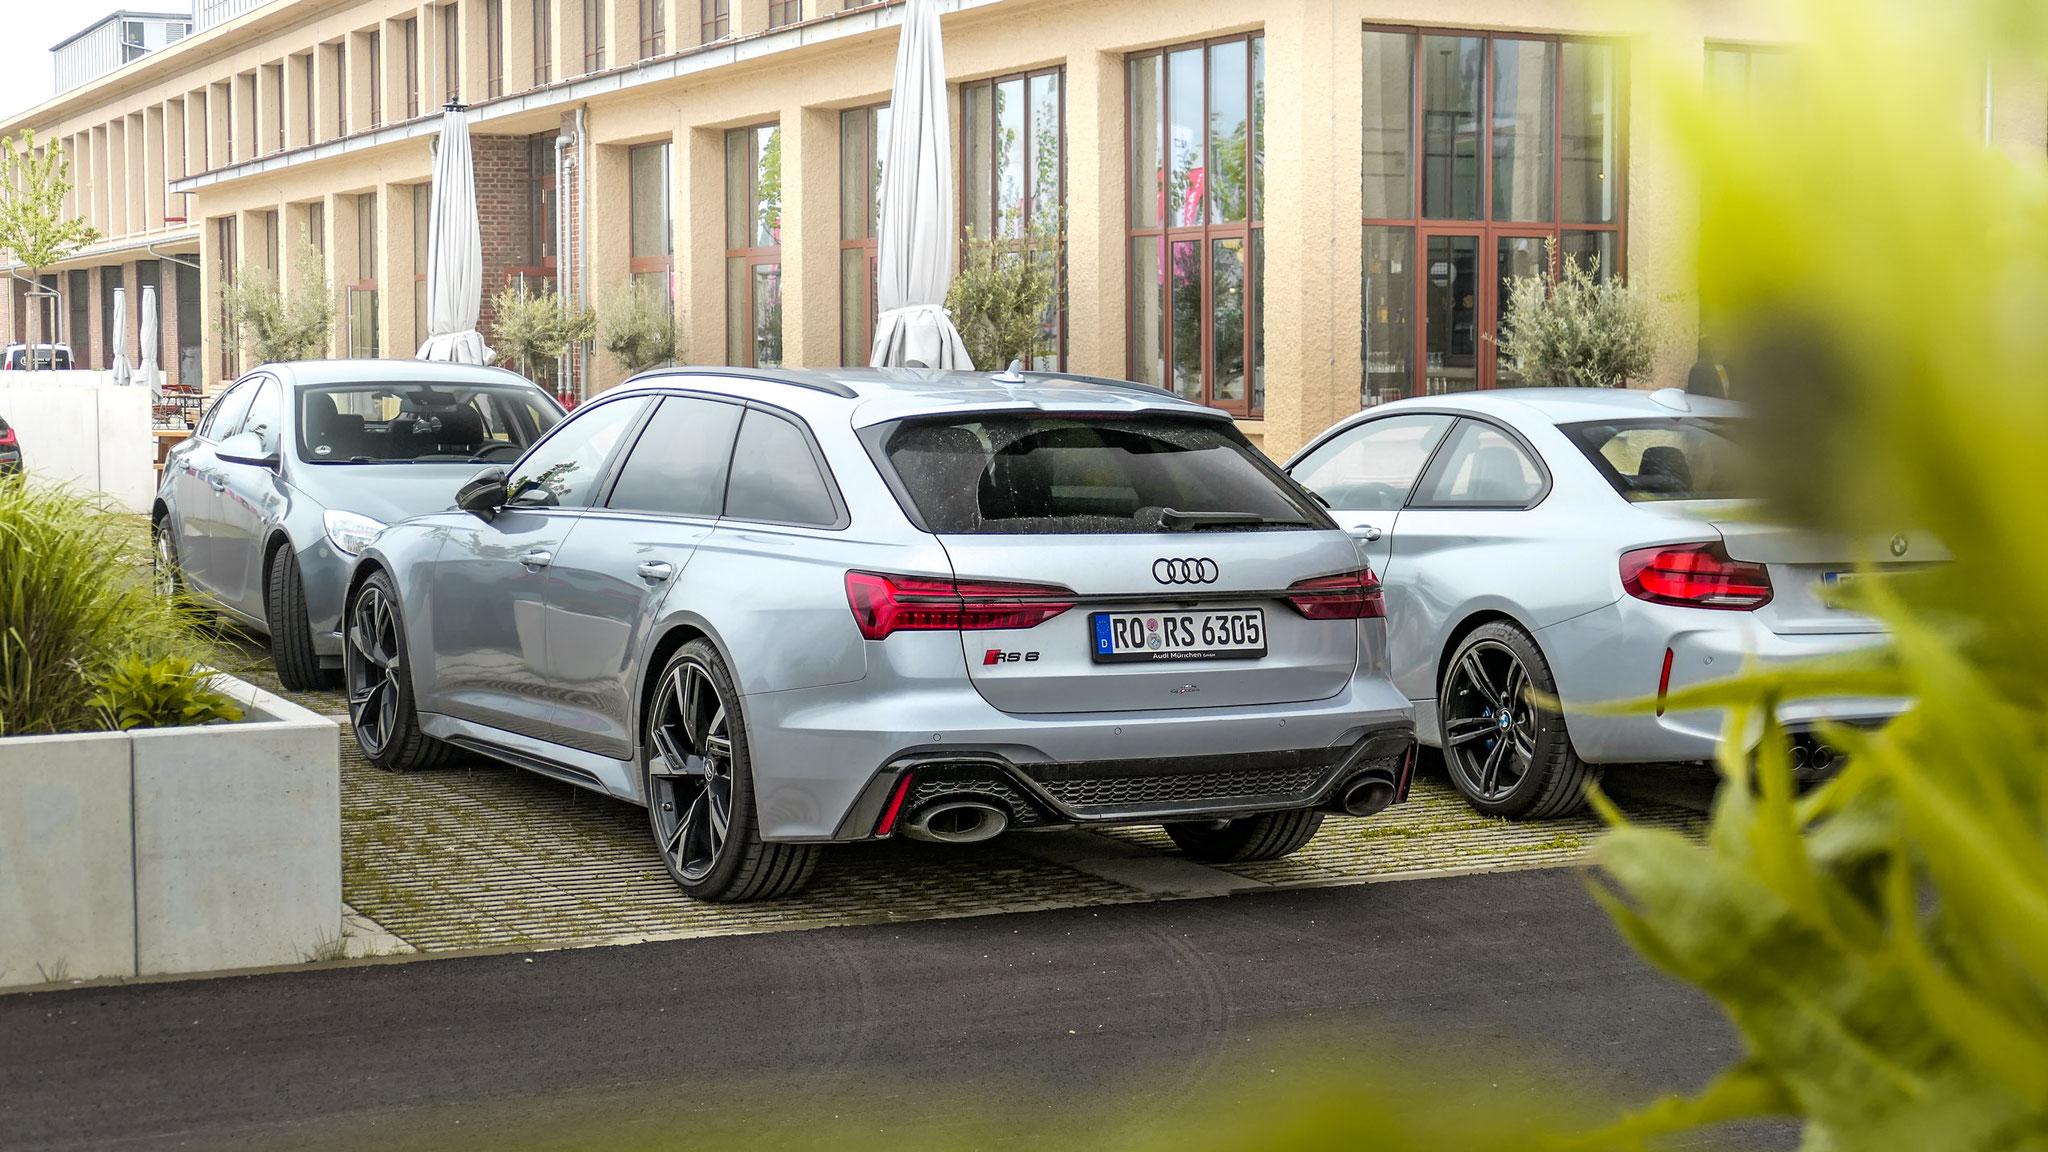 Audi RS6 - RO-RS-6305